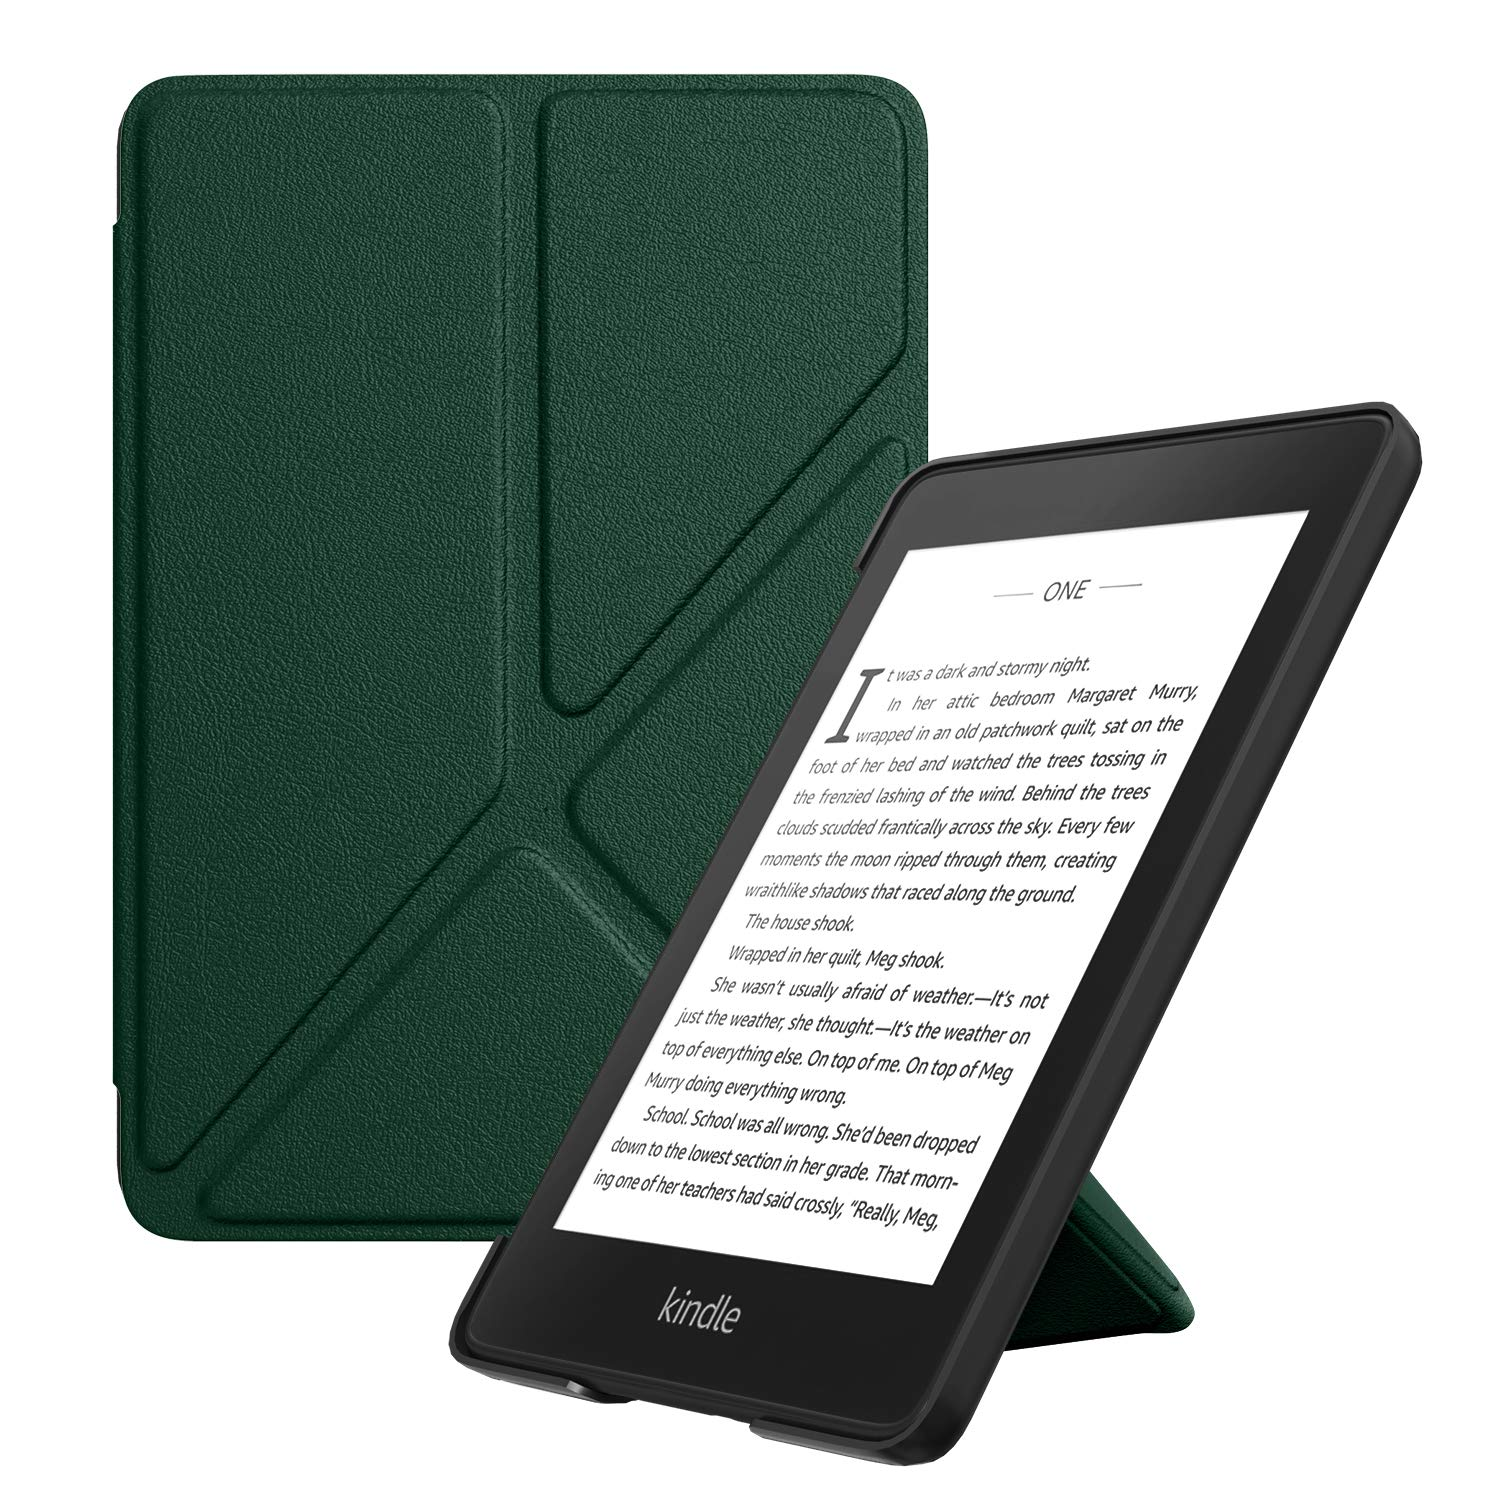 MoKo Case Replacement with Kindle Paperwhite (10th Generation, 2018 Releases), Standing Origami Slim Shell Cover with Auto Wake/Sleep for Amazon Kindle Paperwhite 2018 E-Reader - Army Green